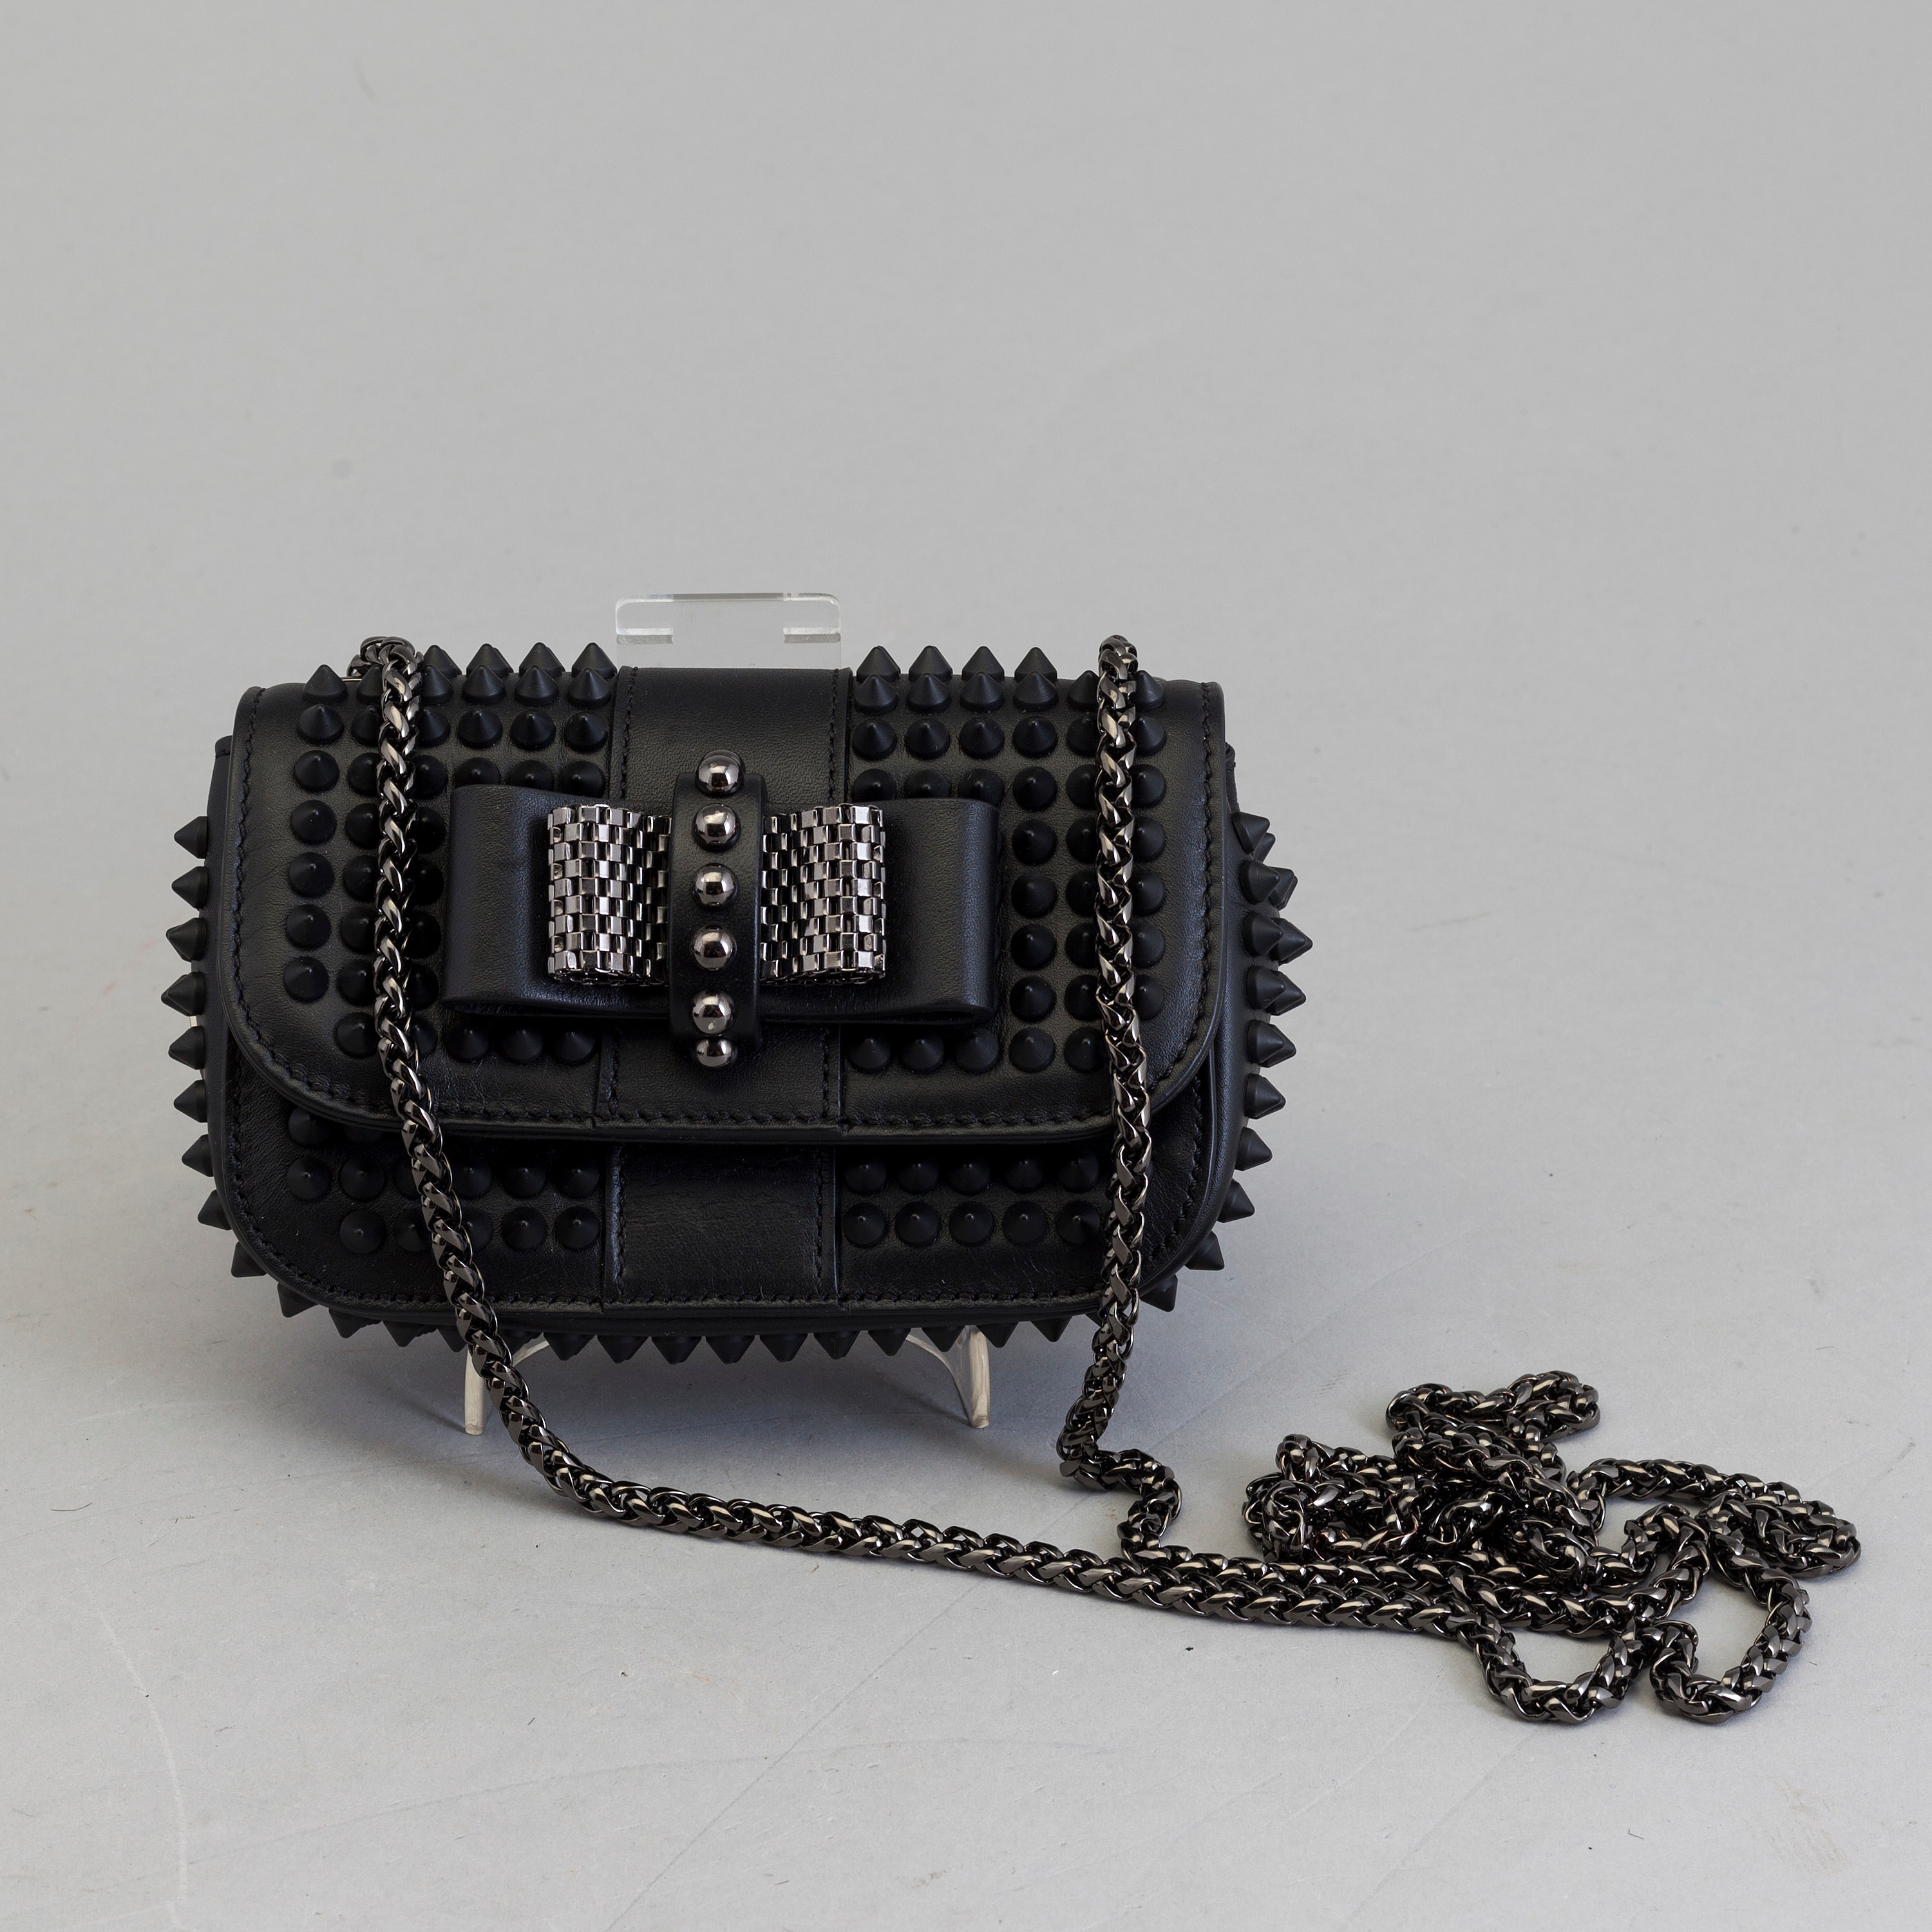 plus de photos e4db9 1957a An eveningbag with studs by Christian Louboutin. - Bukowskis